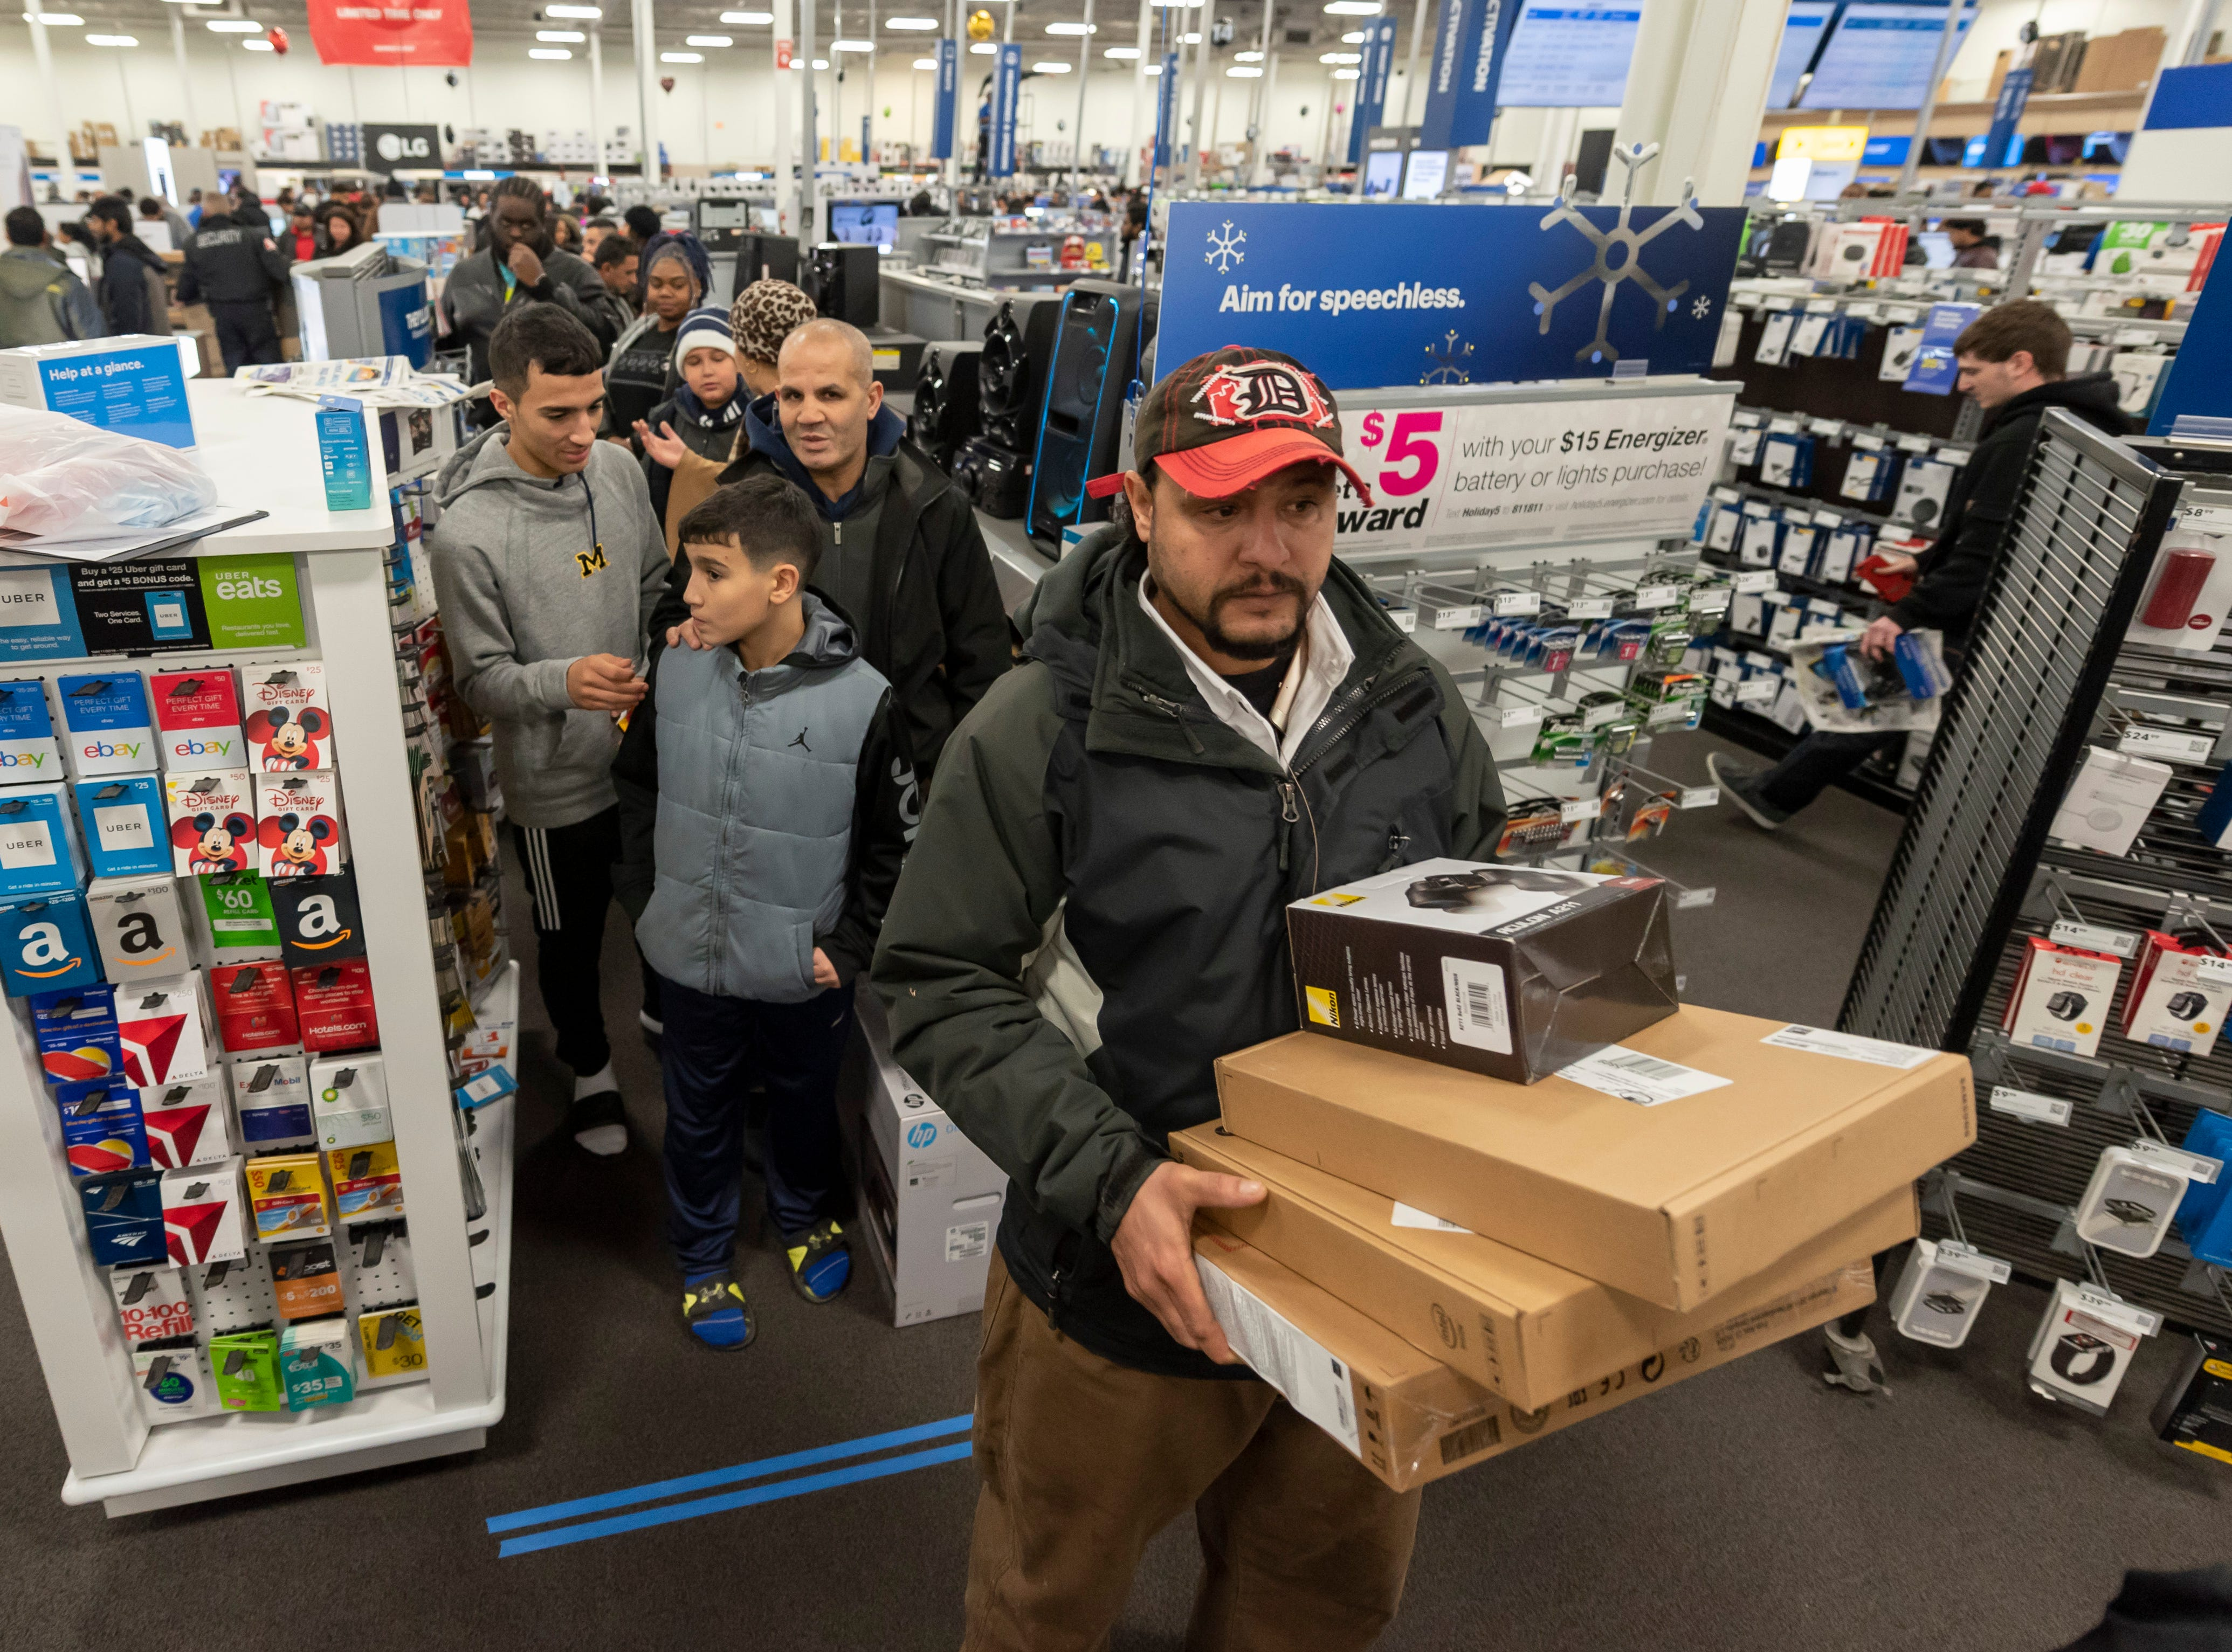 Shoppers wait in line to pay for merchandise during a Thanksgiving evening sale at Best Buy.